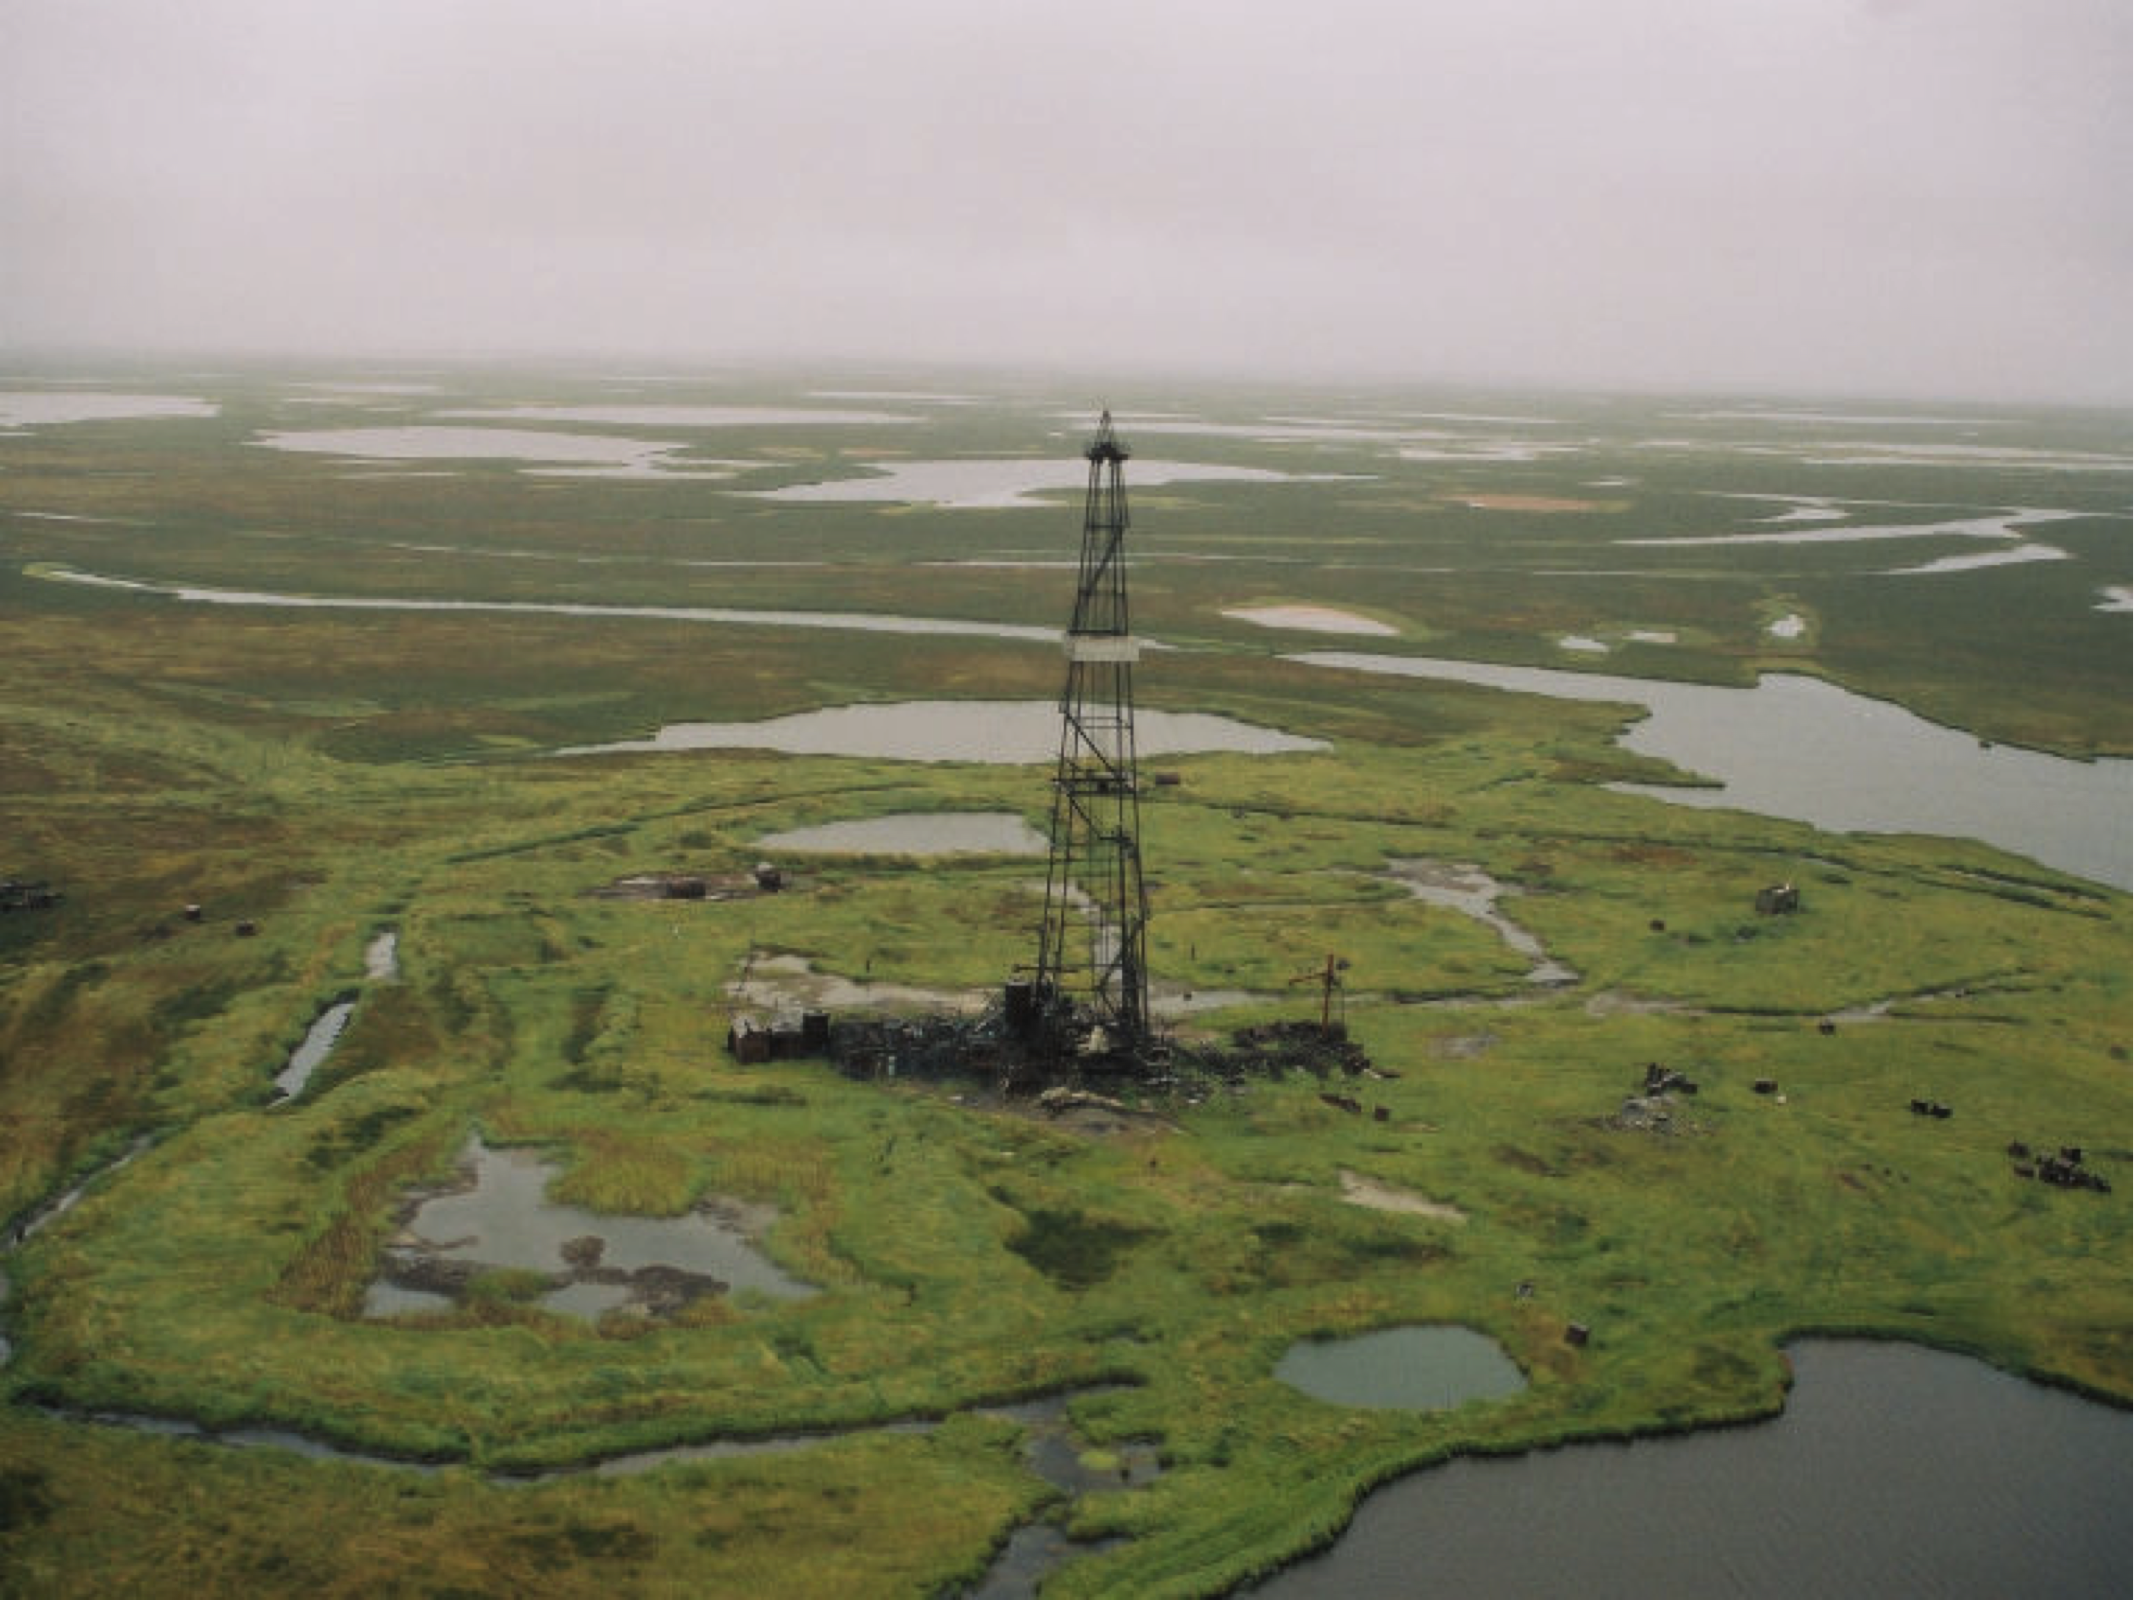 ConocoPhillips Northern Territories Expansion evaluated historical Russian exploration and production sites, with goal of rehabilitation.